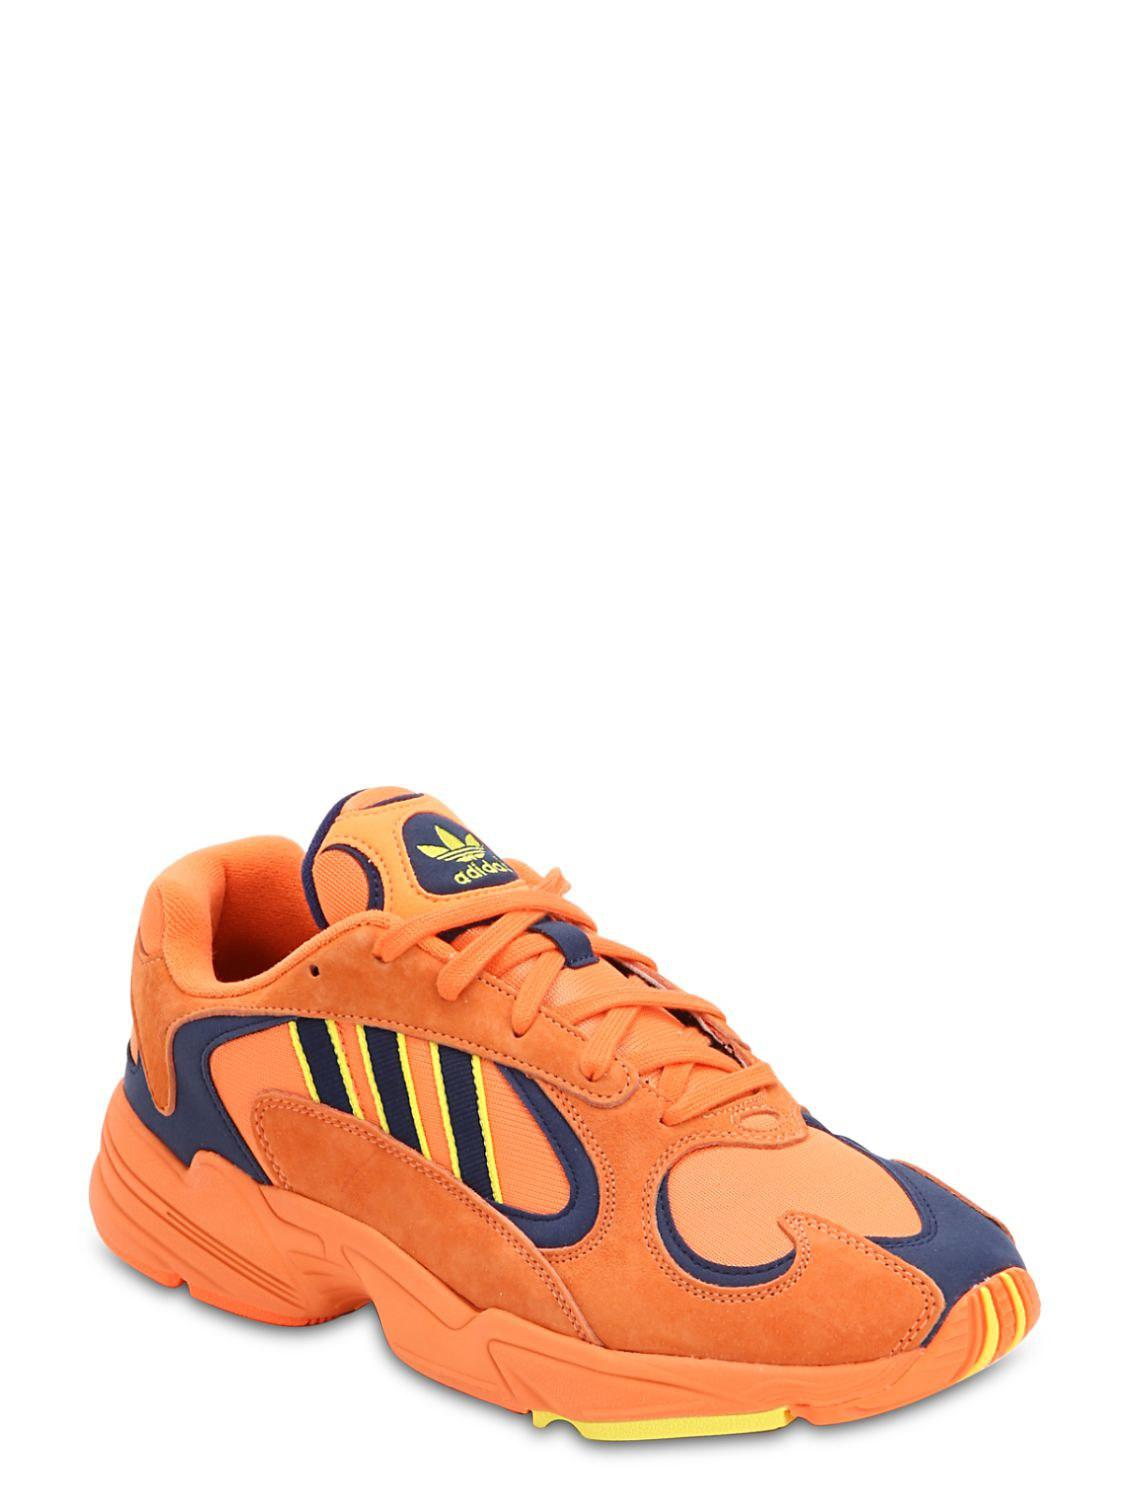 Lyst Adidas Originals Yung 1 Sneakers In Orange For Men Save